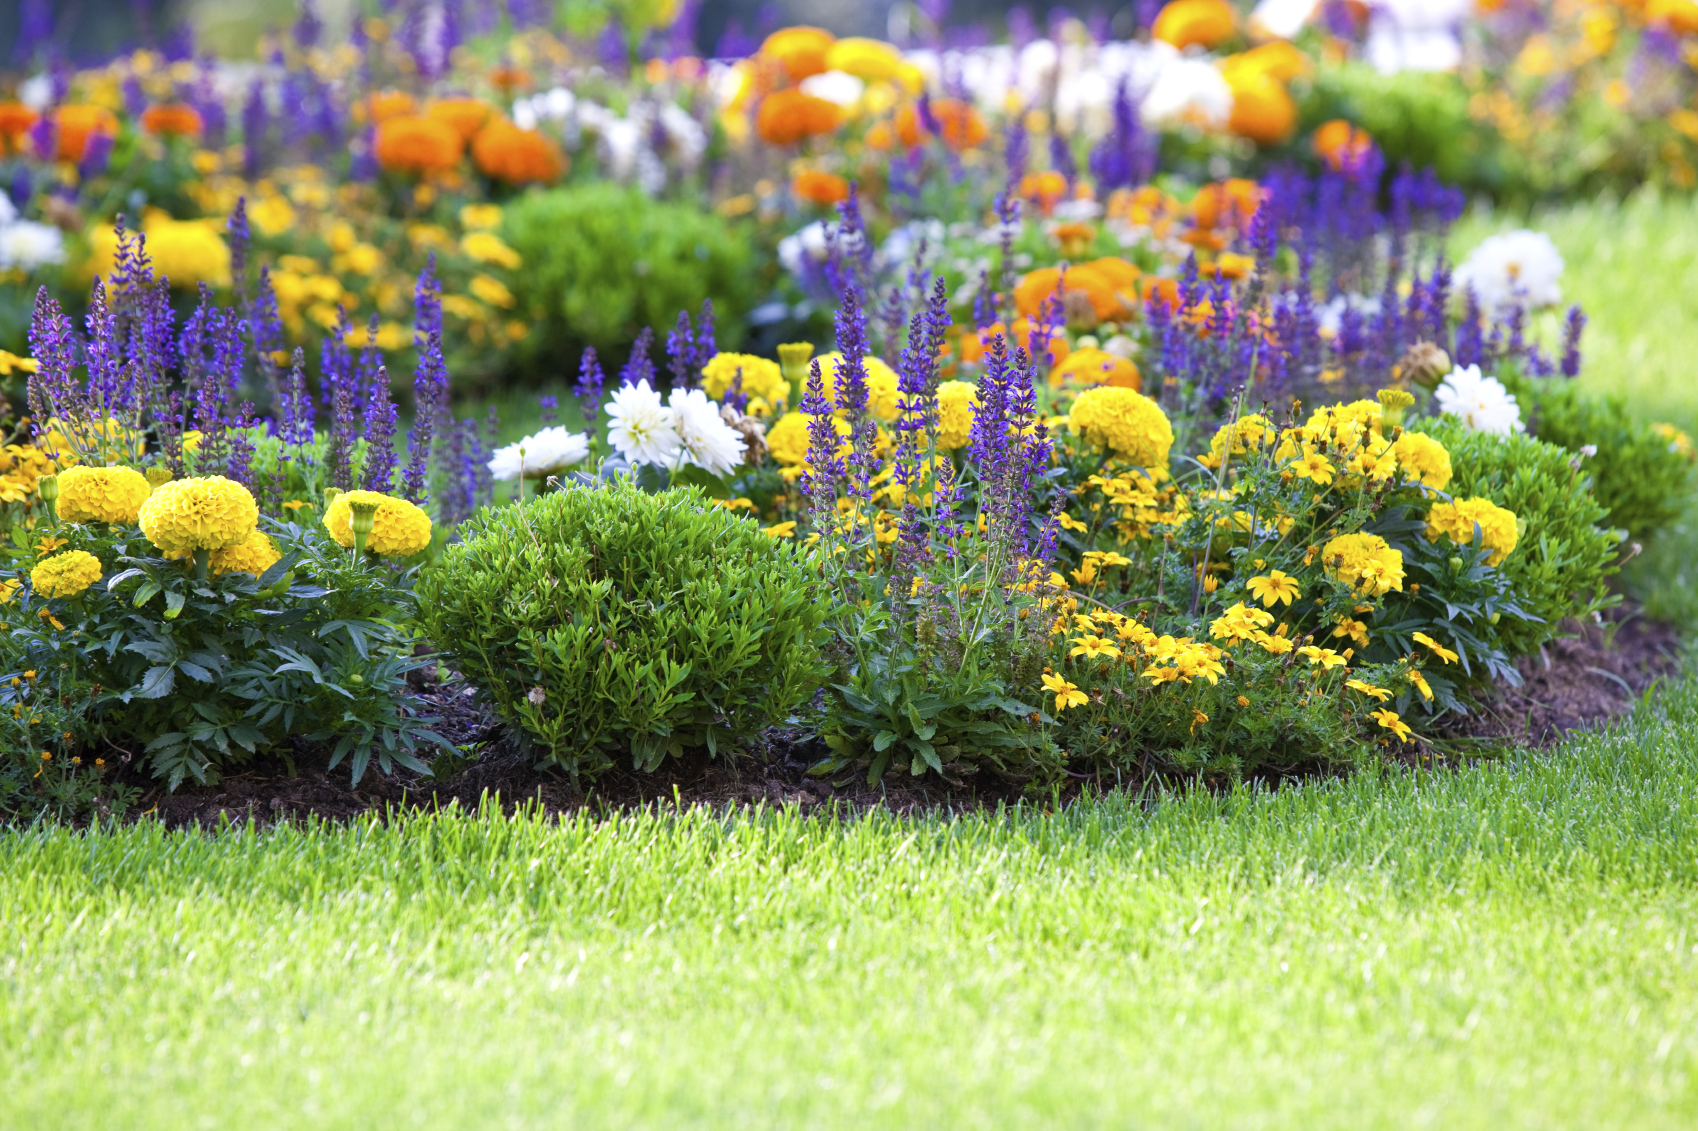 Flower gardening how to start a flower garden for Landscape flowers and plants